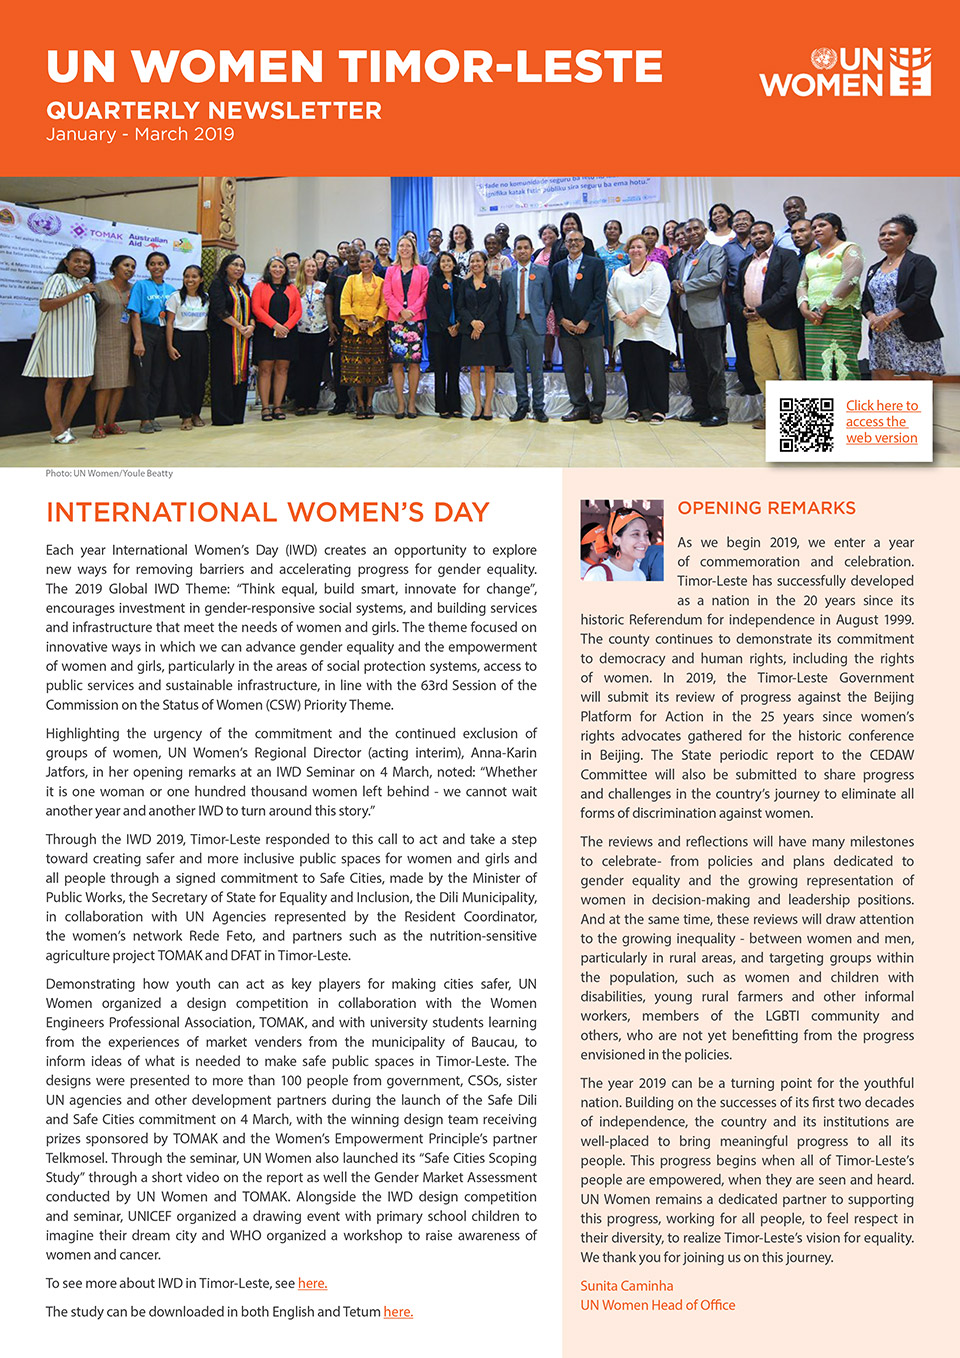 UN Women Timor-Leste Quartery Newsletter | January—March 2019